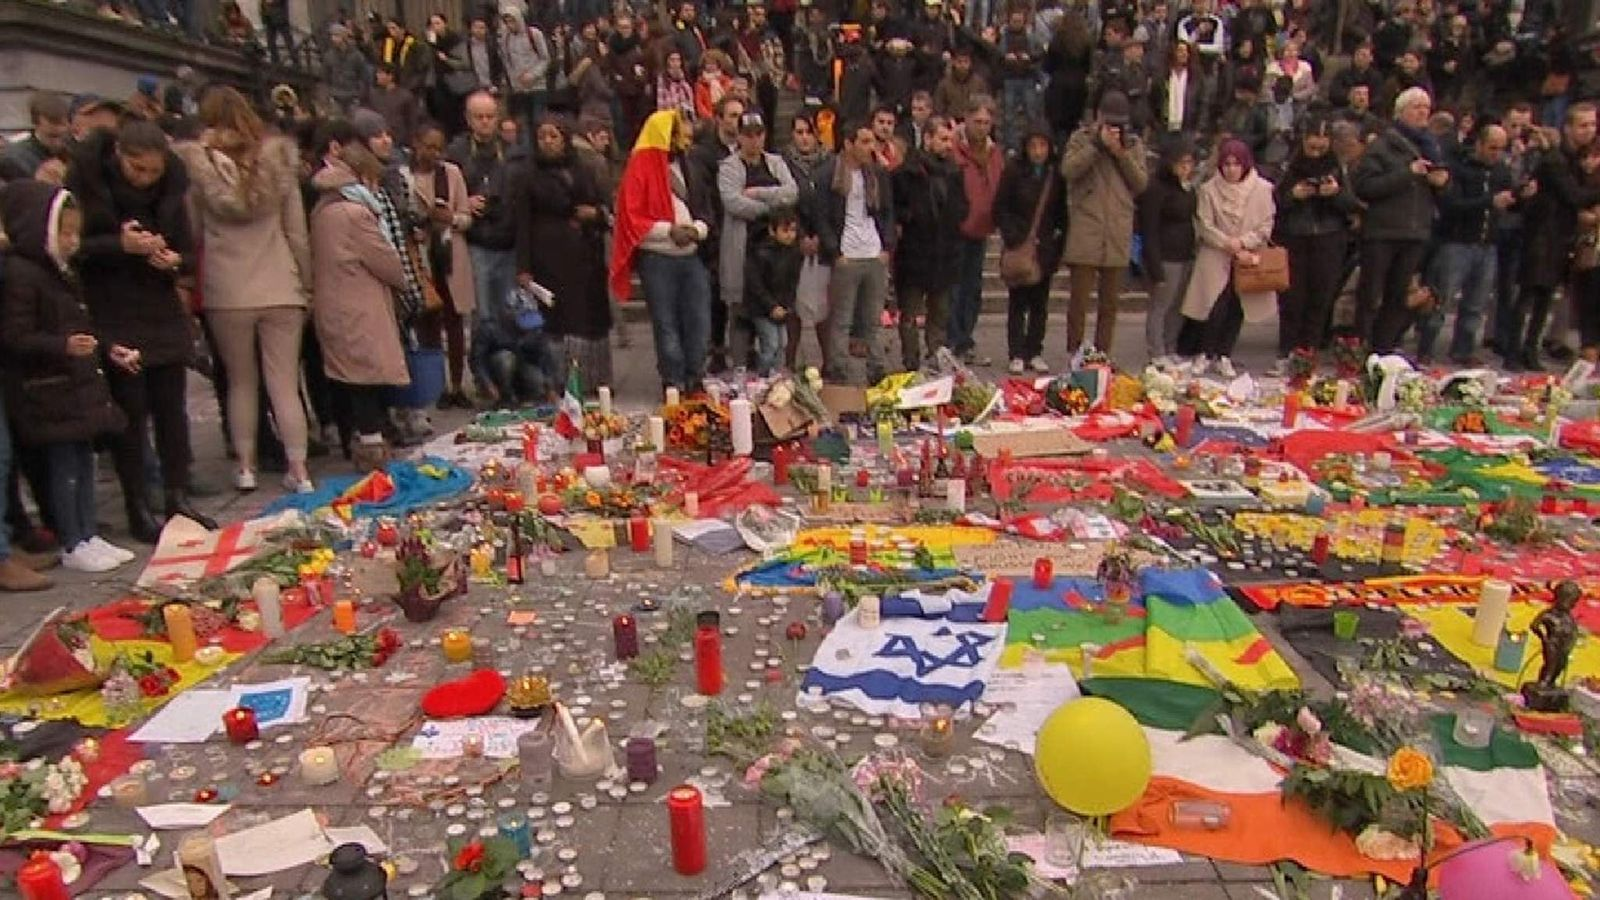 People in Brussels mourn those lost in attacks on the airport and metro station